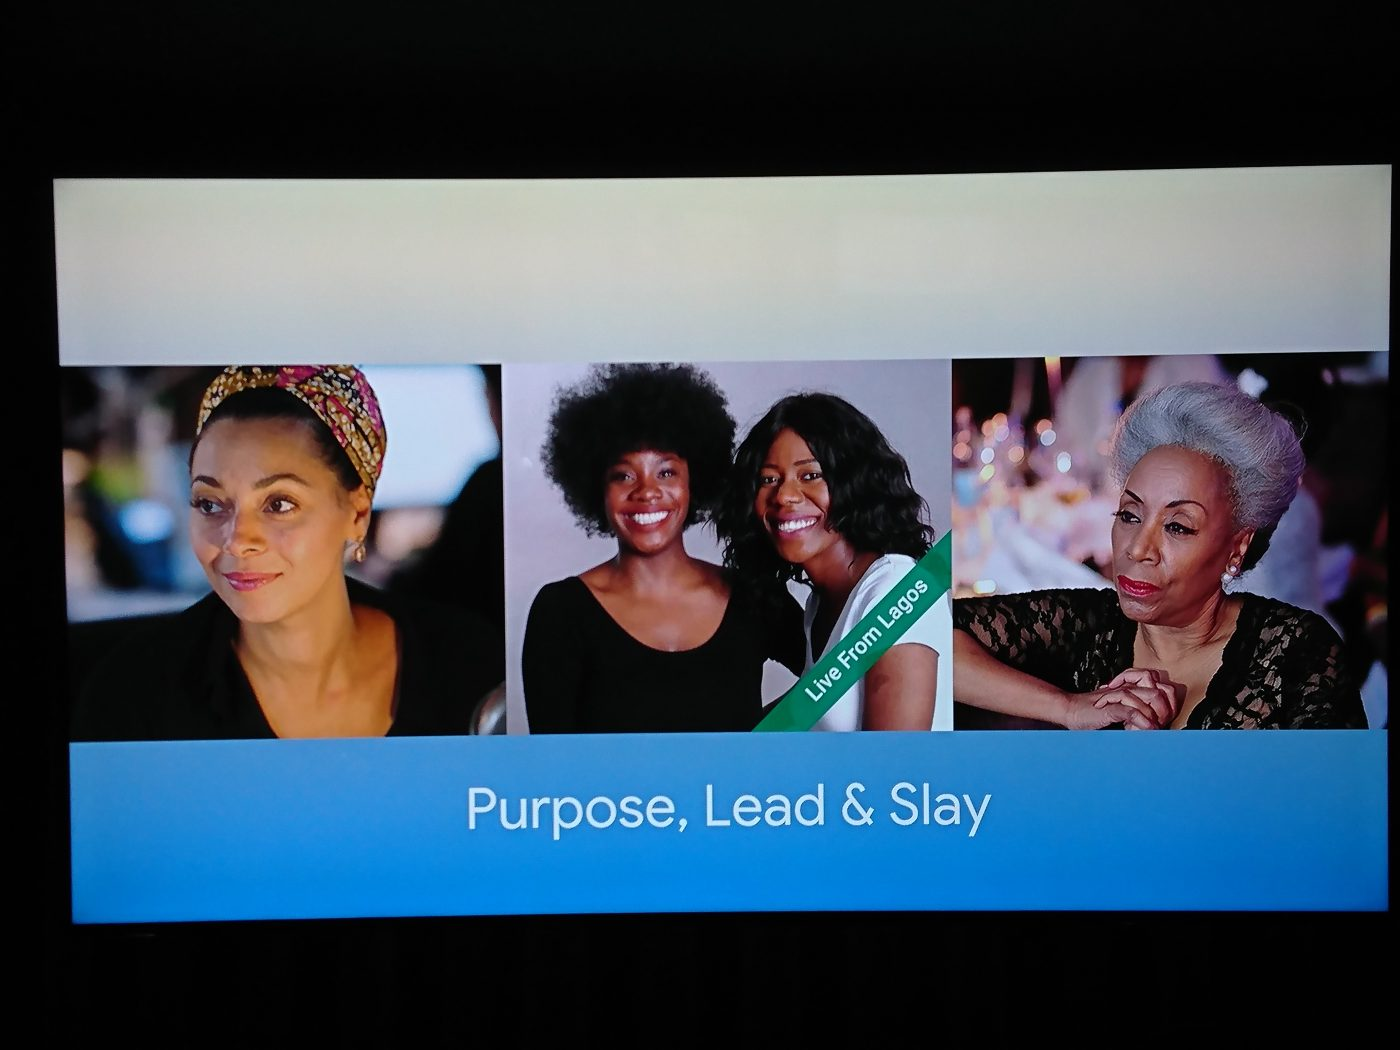 Purpose. Lead. Slay (and how to build your personal brand).